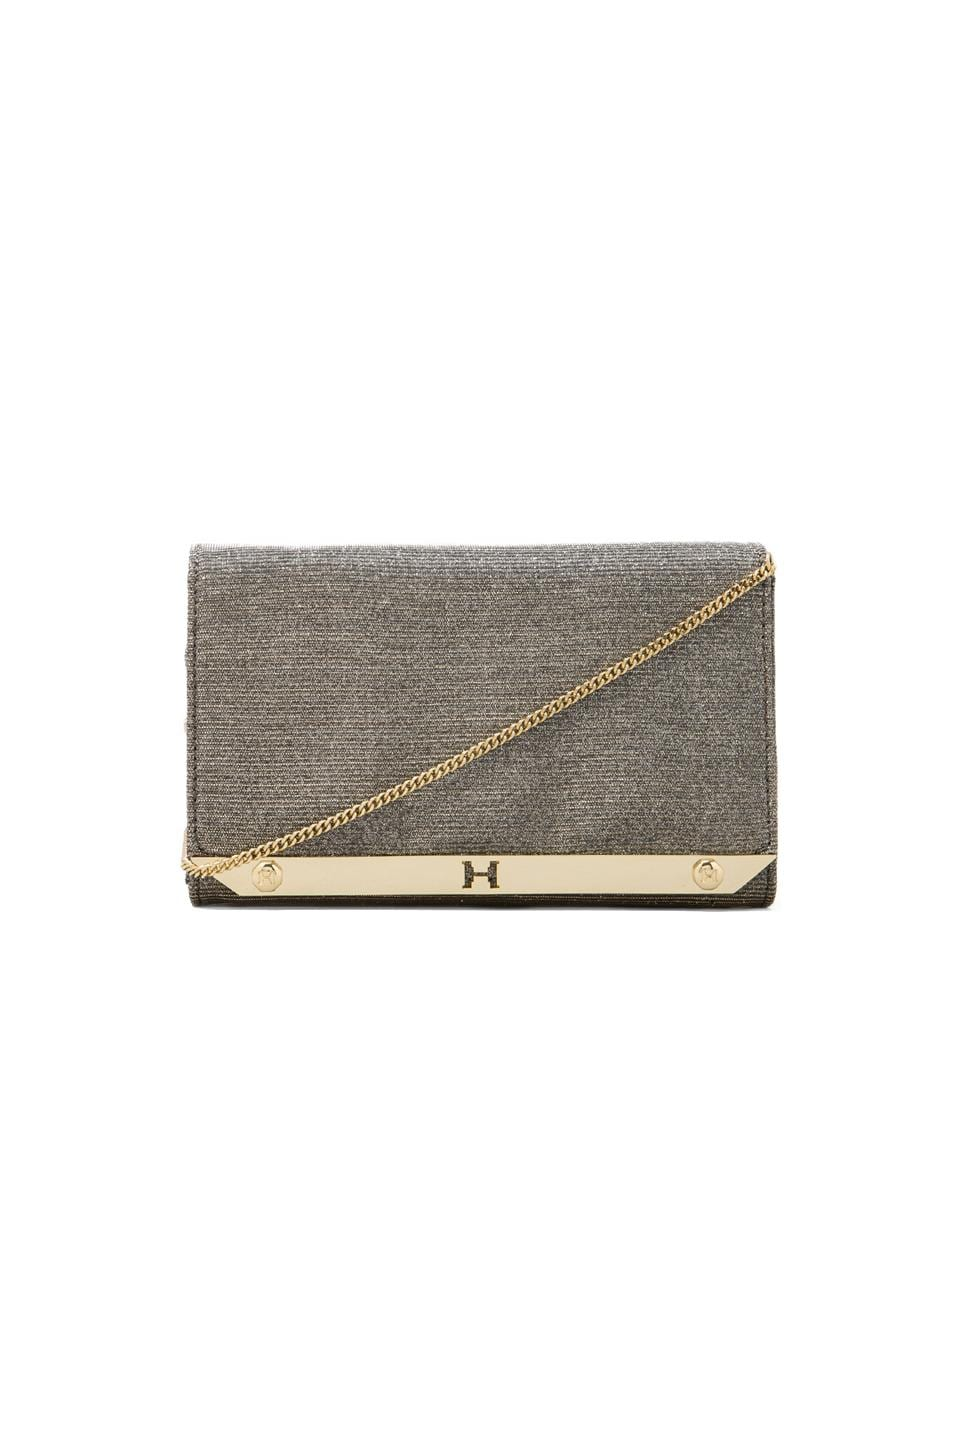 Halston Heritage Metal Frame Mini Clutch in Flint